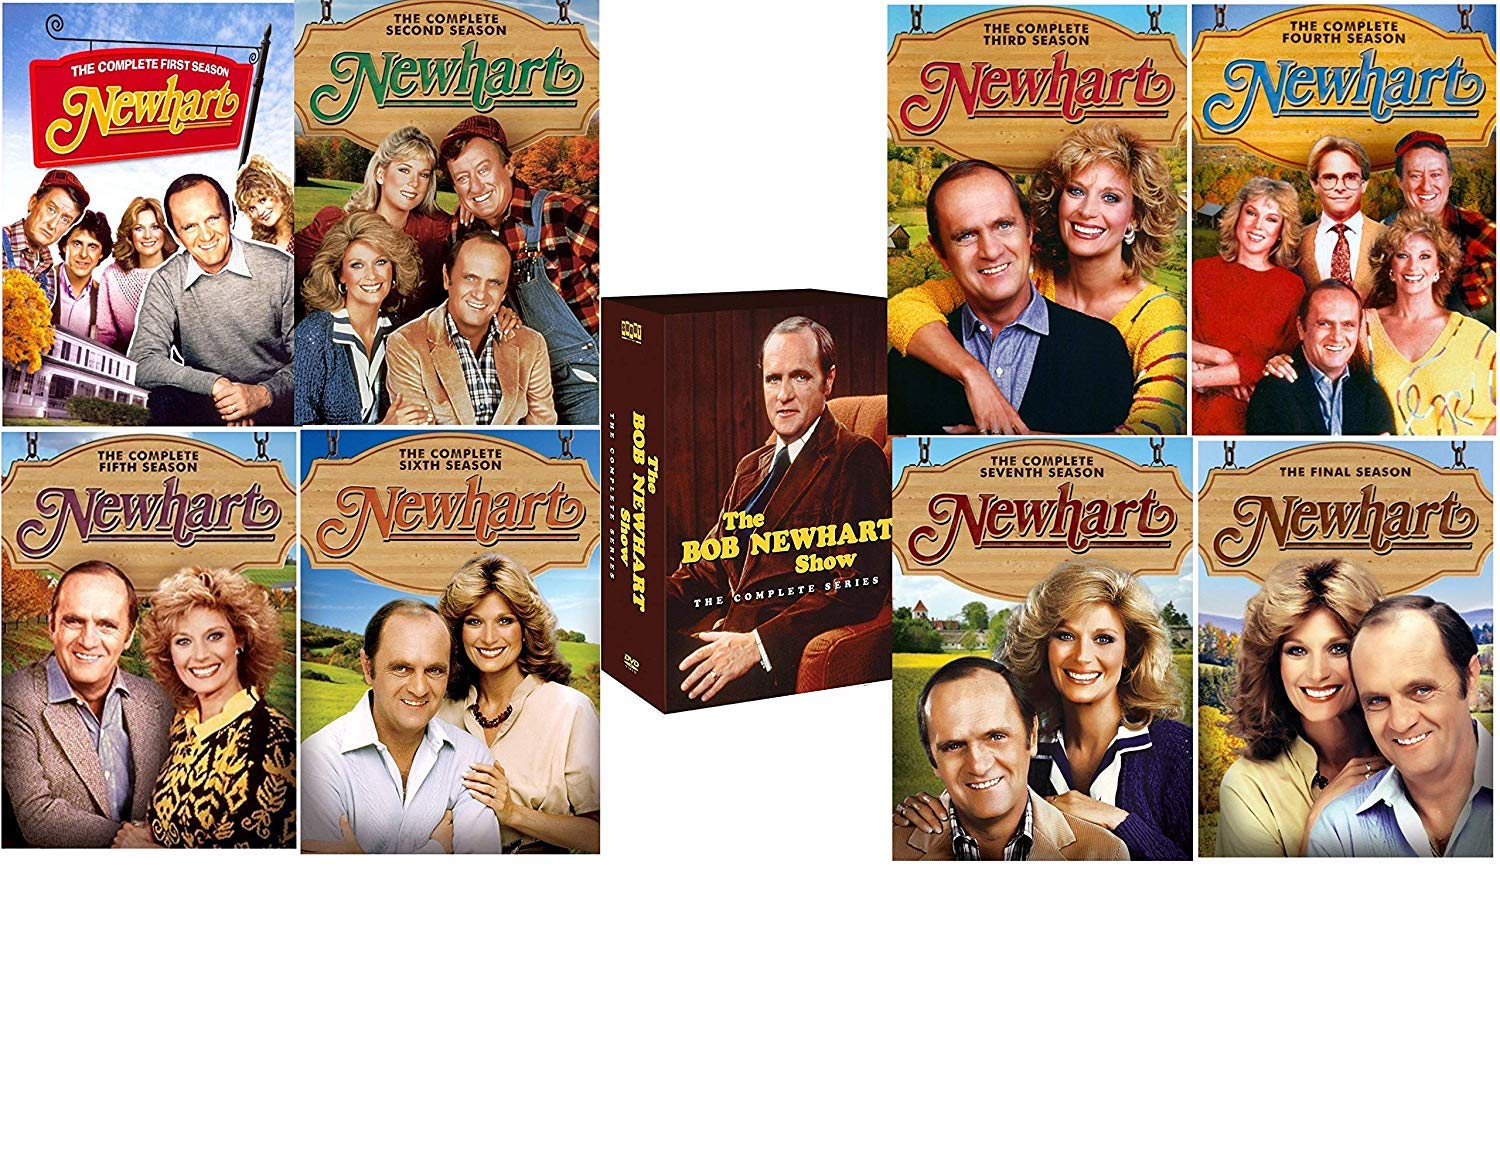 Newhart: The Complete 1980s TV Series Seasons 1-8 +The Bob Newhart Show: The Complete Series